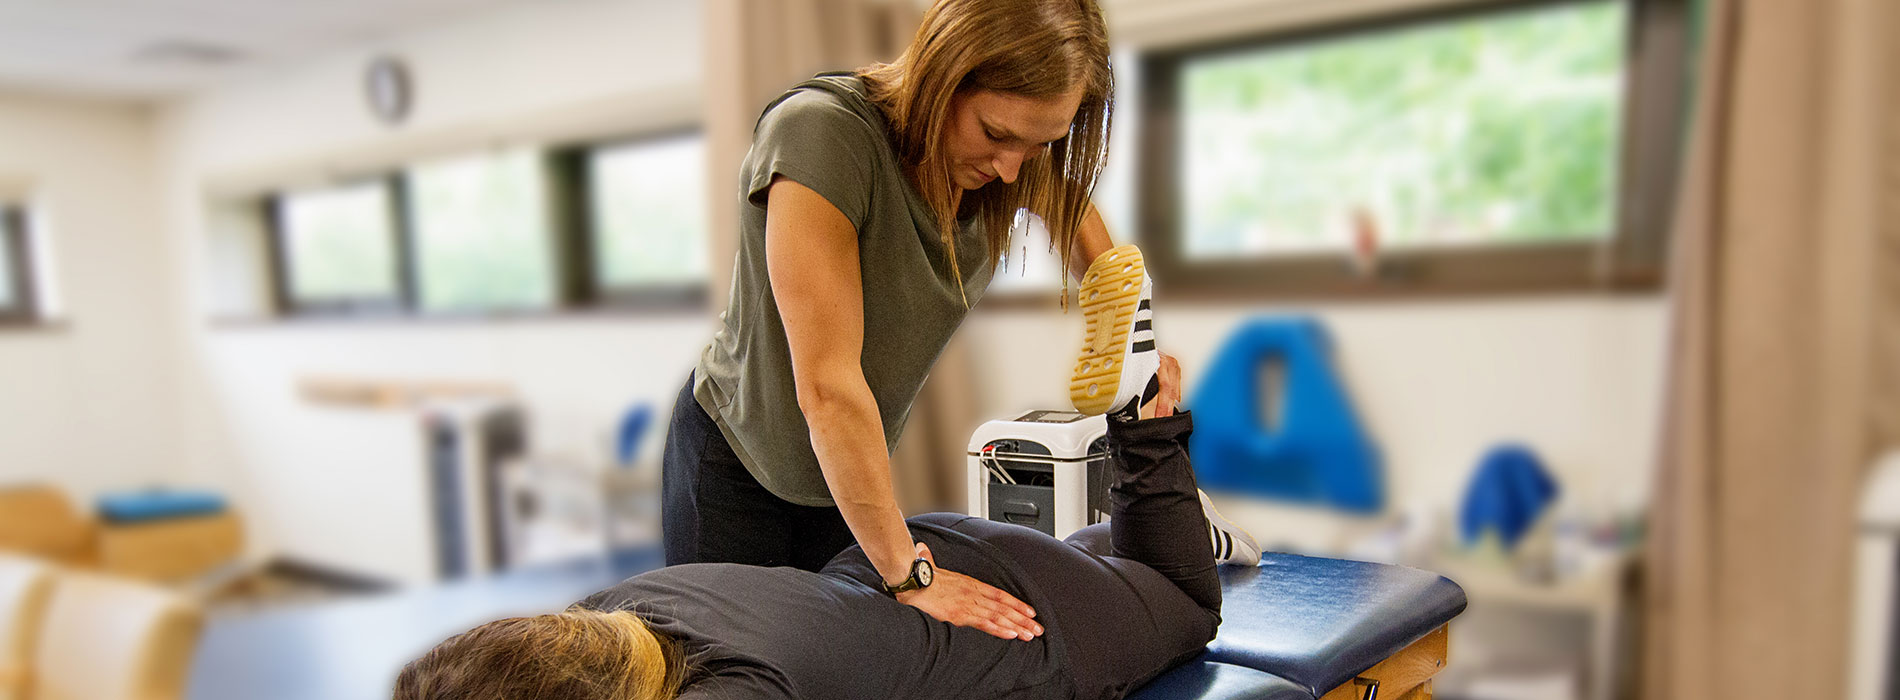 theradynamics physical therapy manual therapy stretching